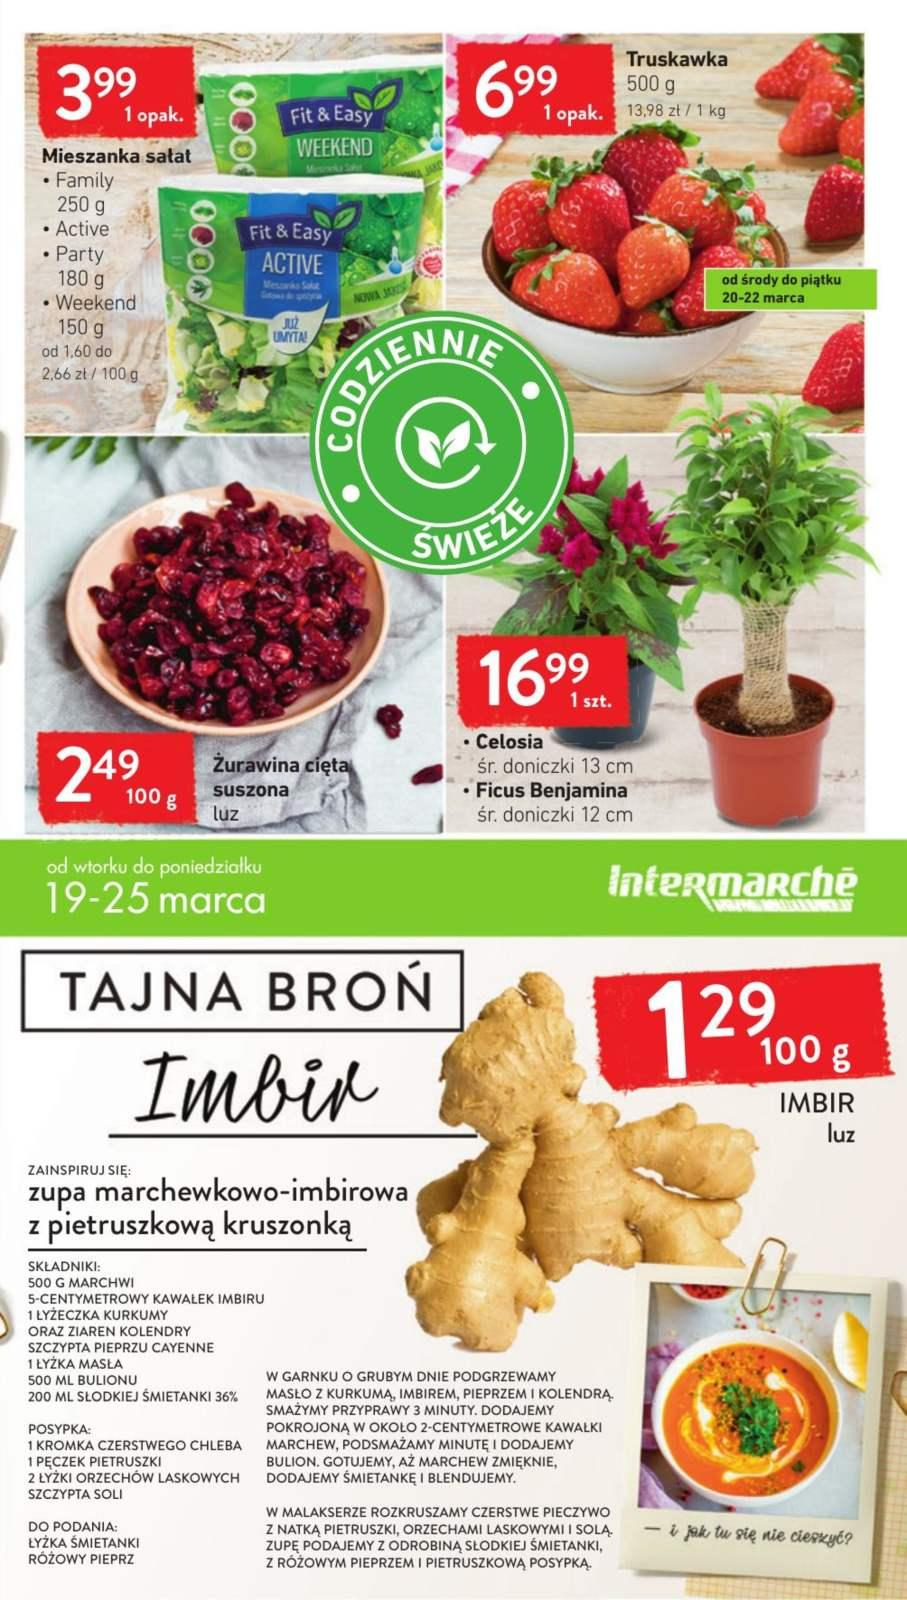 Gazetka promocyjna Intermarche do 25/03/2019 str.2